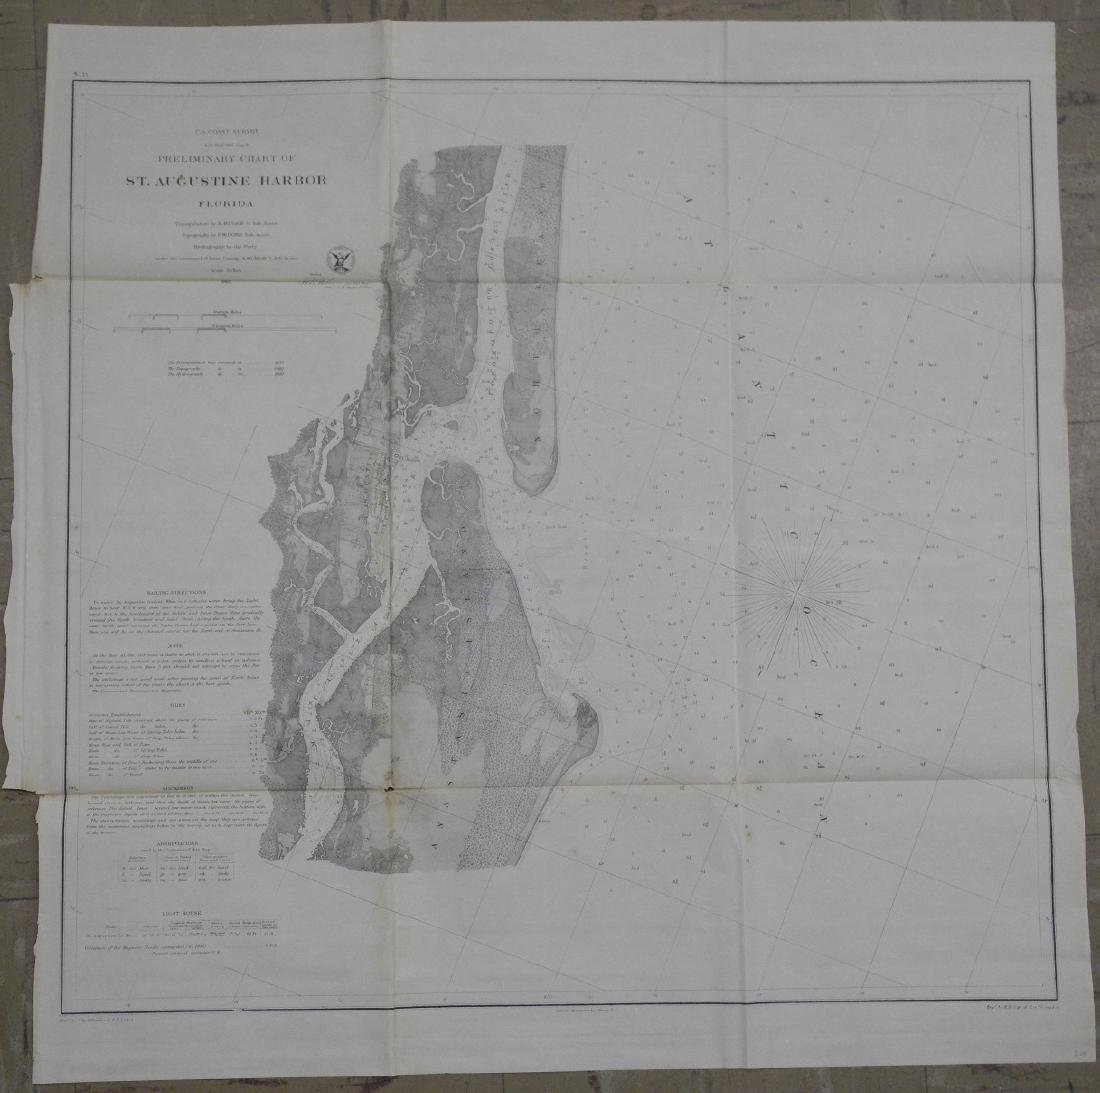 Preliminary Chart of St. Augustine Harbor Florida